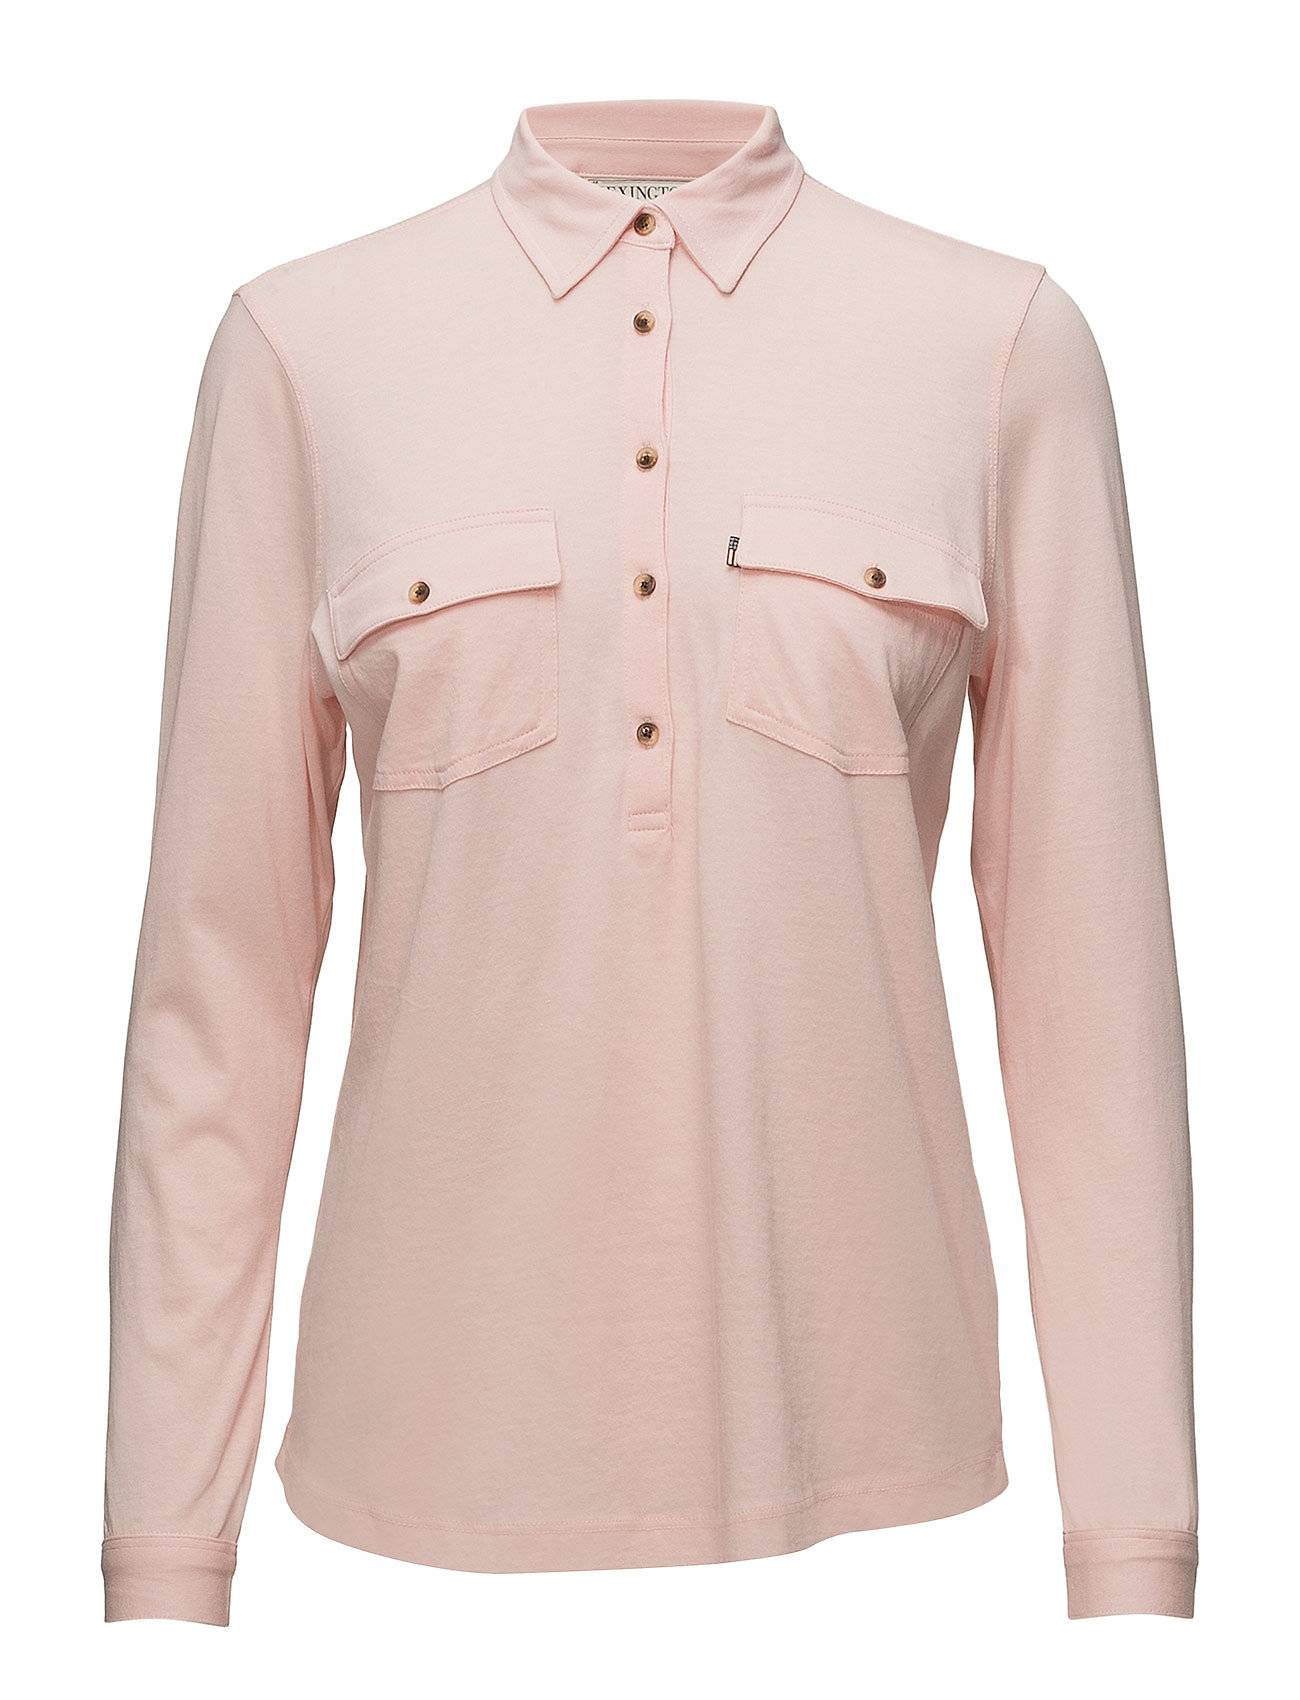 Lexington Clothing Olivia Jersey Shirt